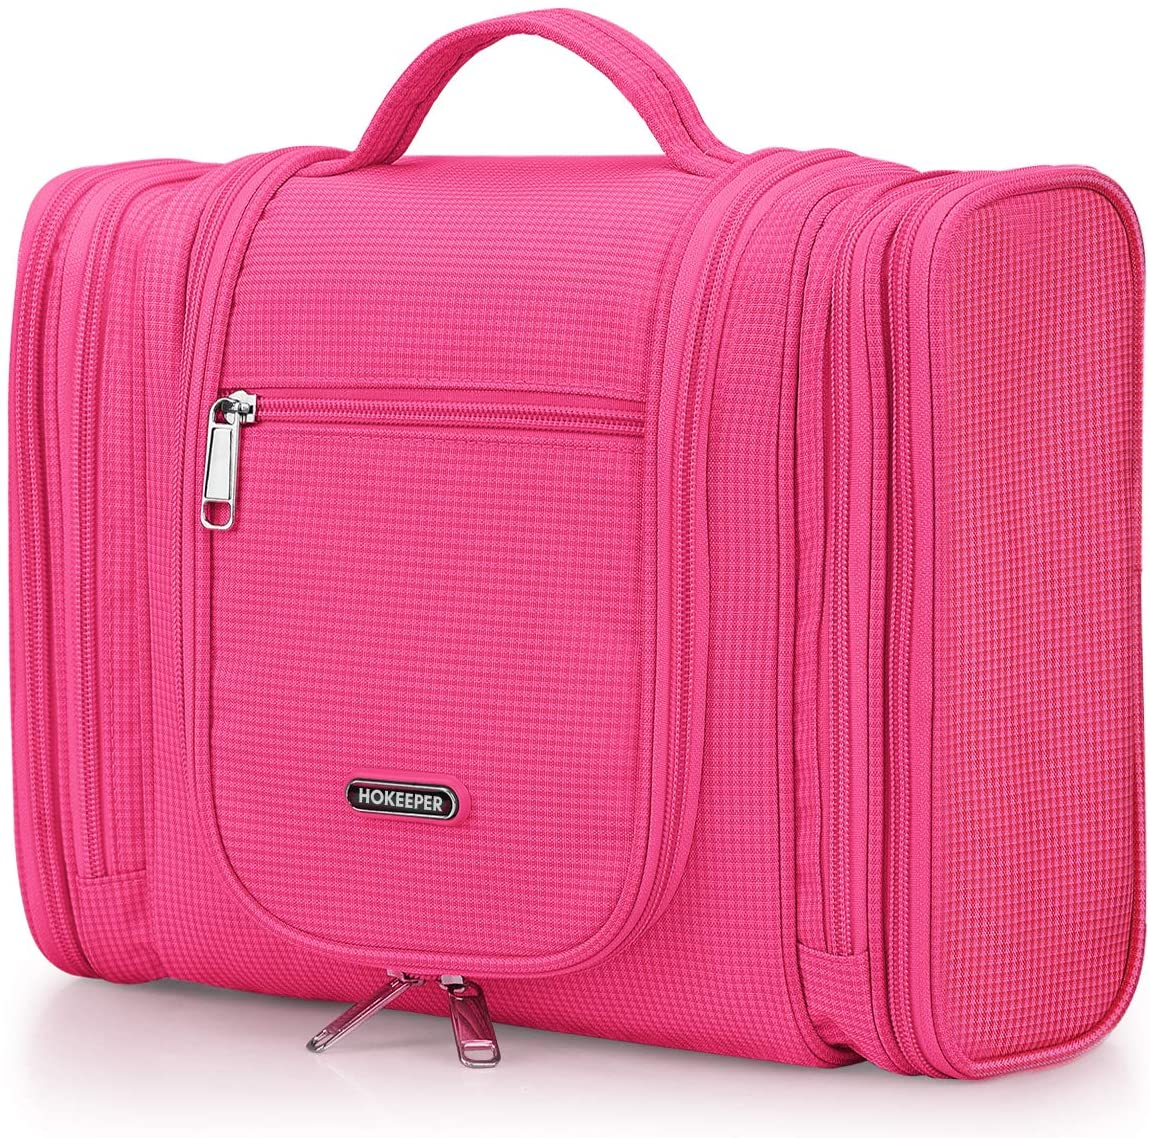 Hanging New products, world's highest quality popular! Online limited product Travel Toiletry Bag for Women Men and Cosmeti Duty Heavy